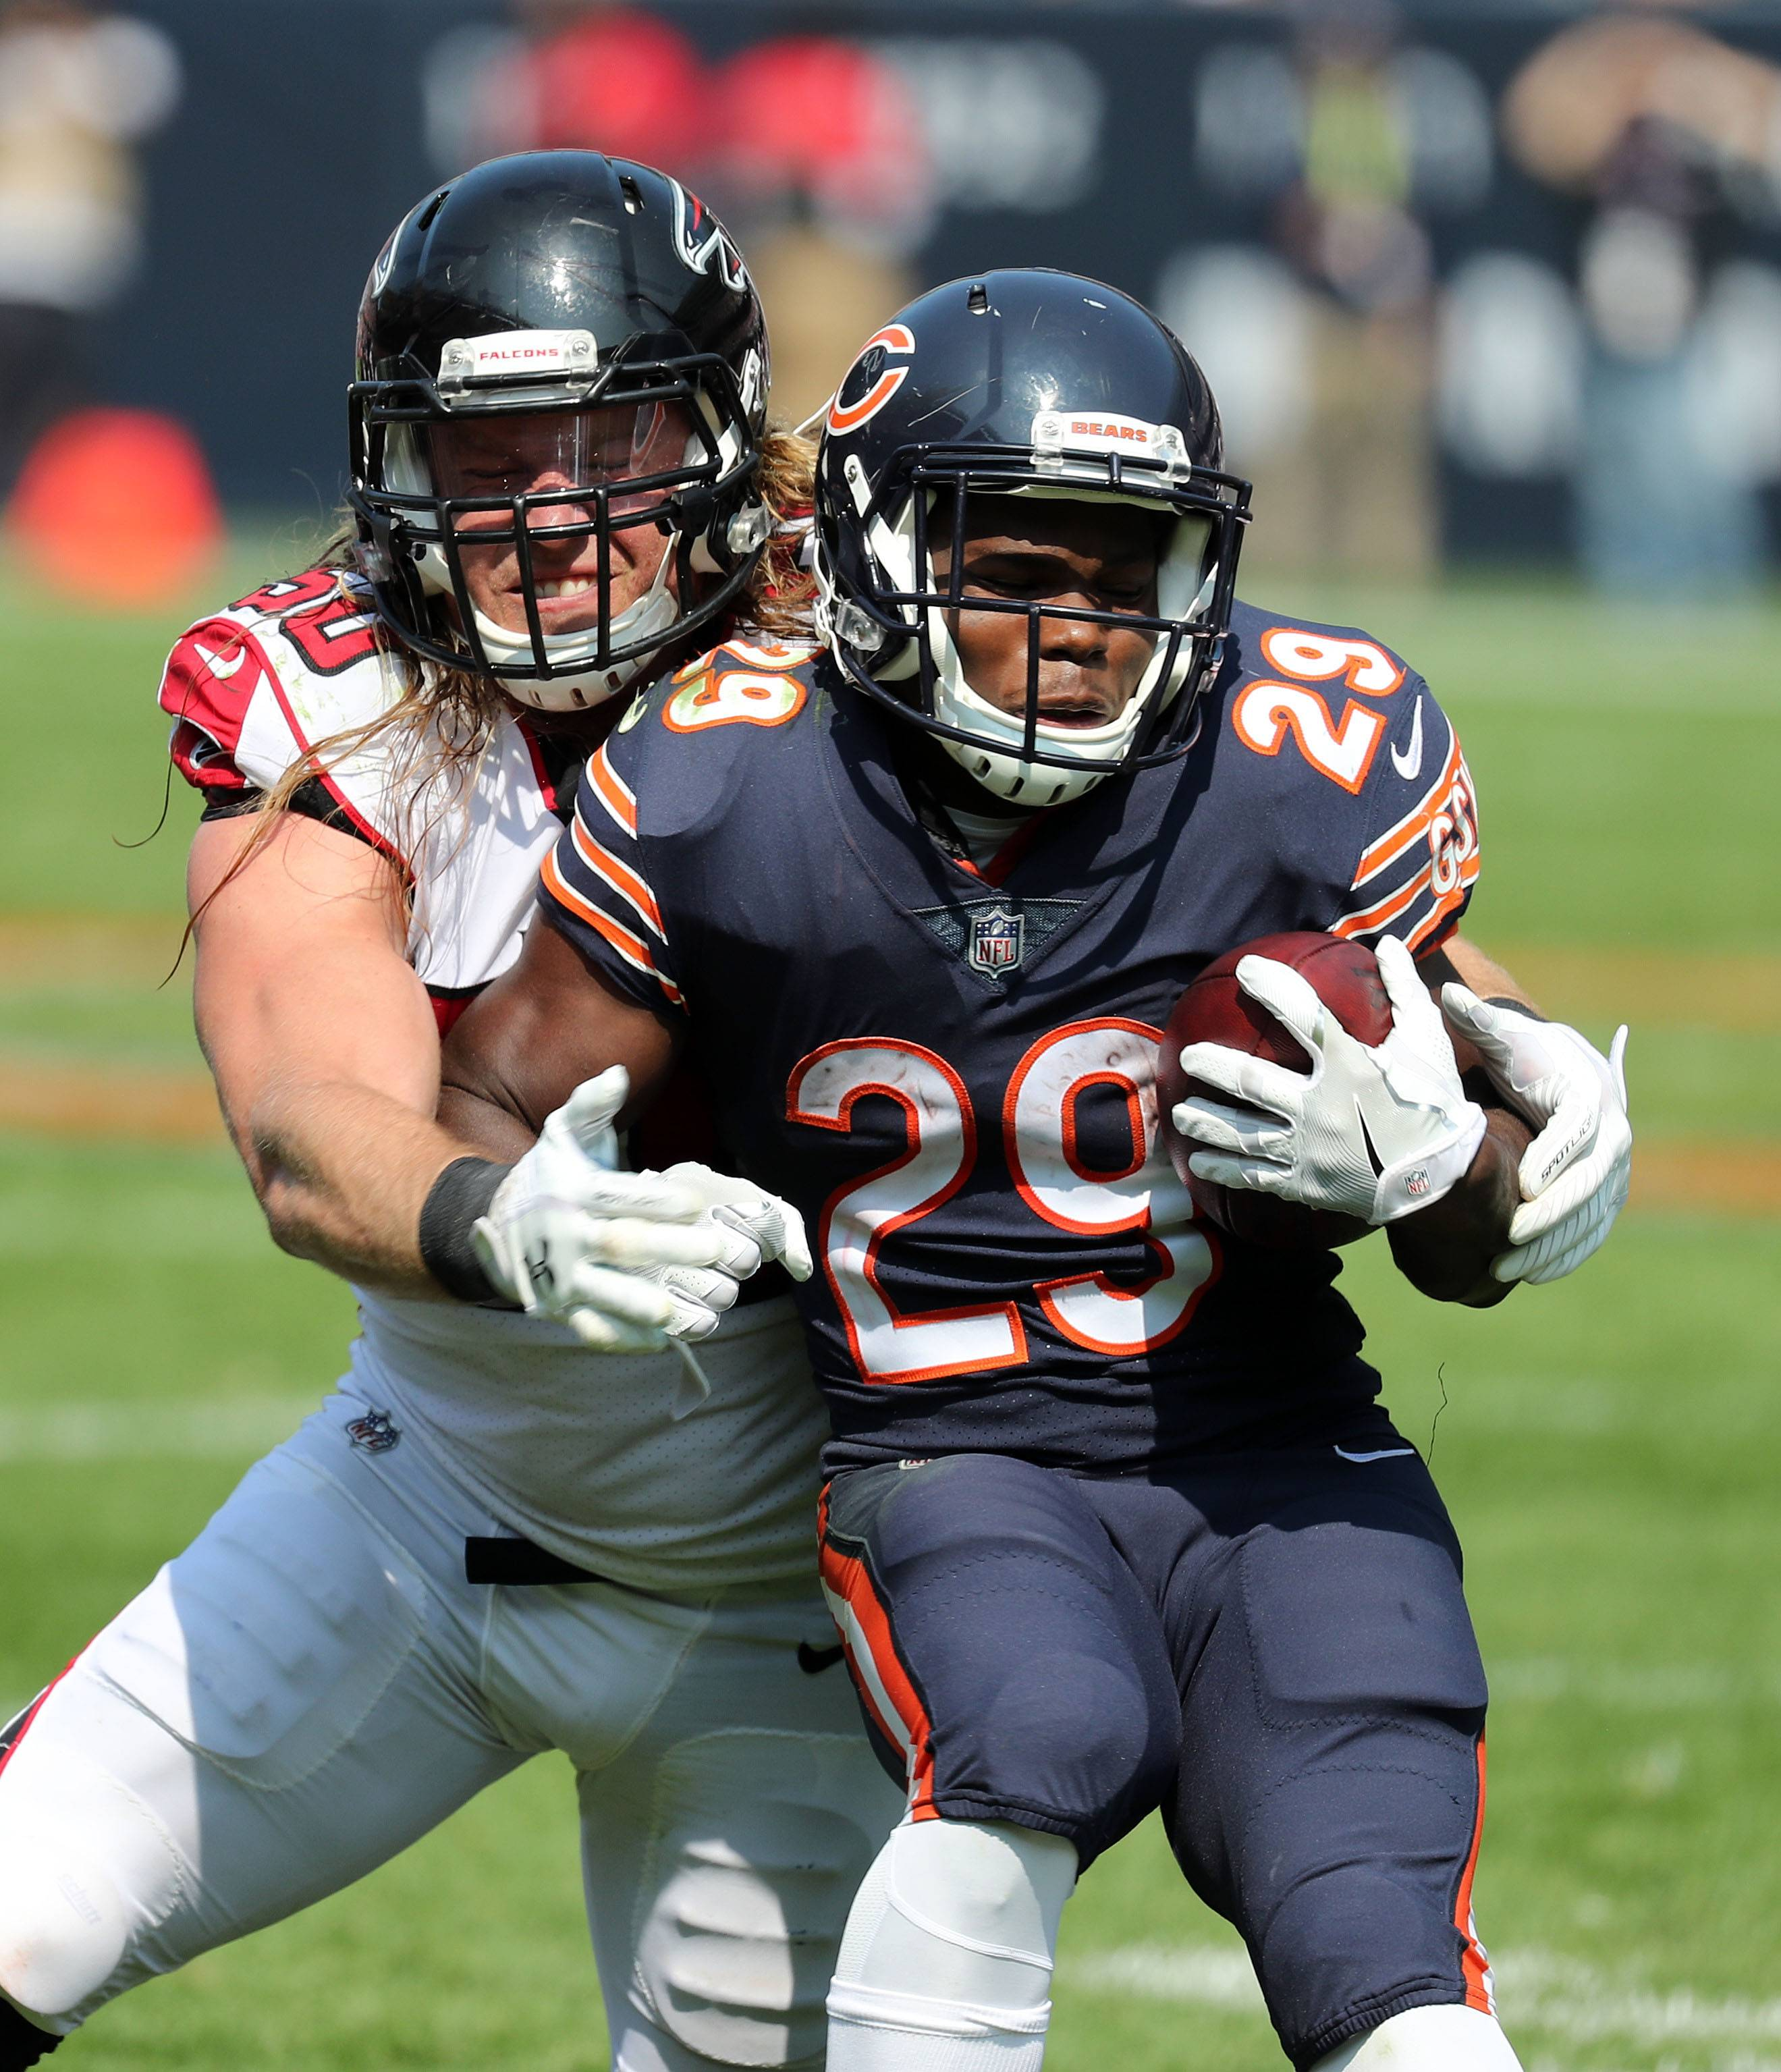 Chicago Bears running back Tarik Cohen is tackled by Atlanta Falcons defensive end Brooks Reed during their game Sunday, Sept. 10, 2017, at Soldier Field on Chicago.